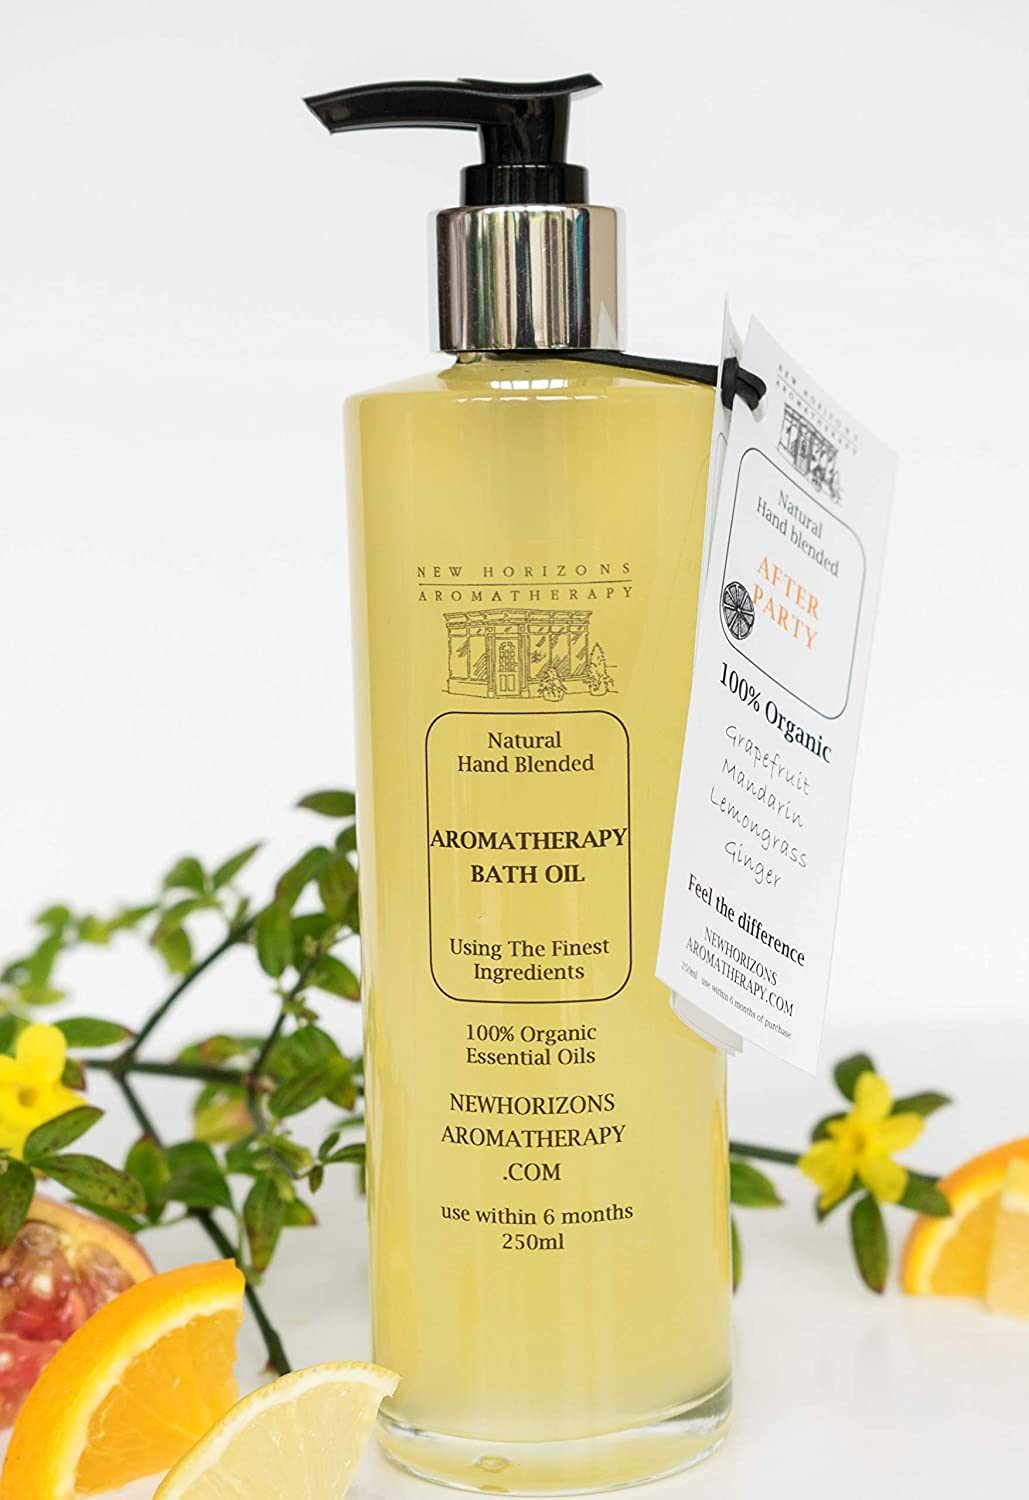 AFTER PARTY Bath Oil. Sunflower, Jojoba and Vitamin E base. 100% Organic Essential Oils. 250ml Glass bottle or Biodegradable refill